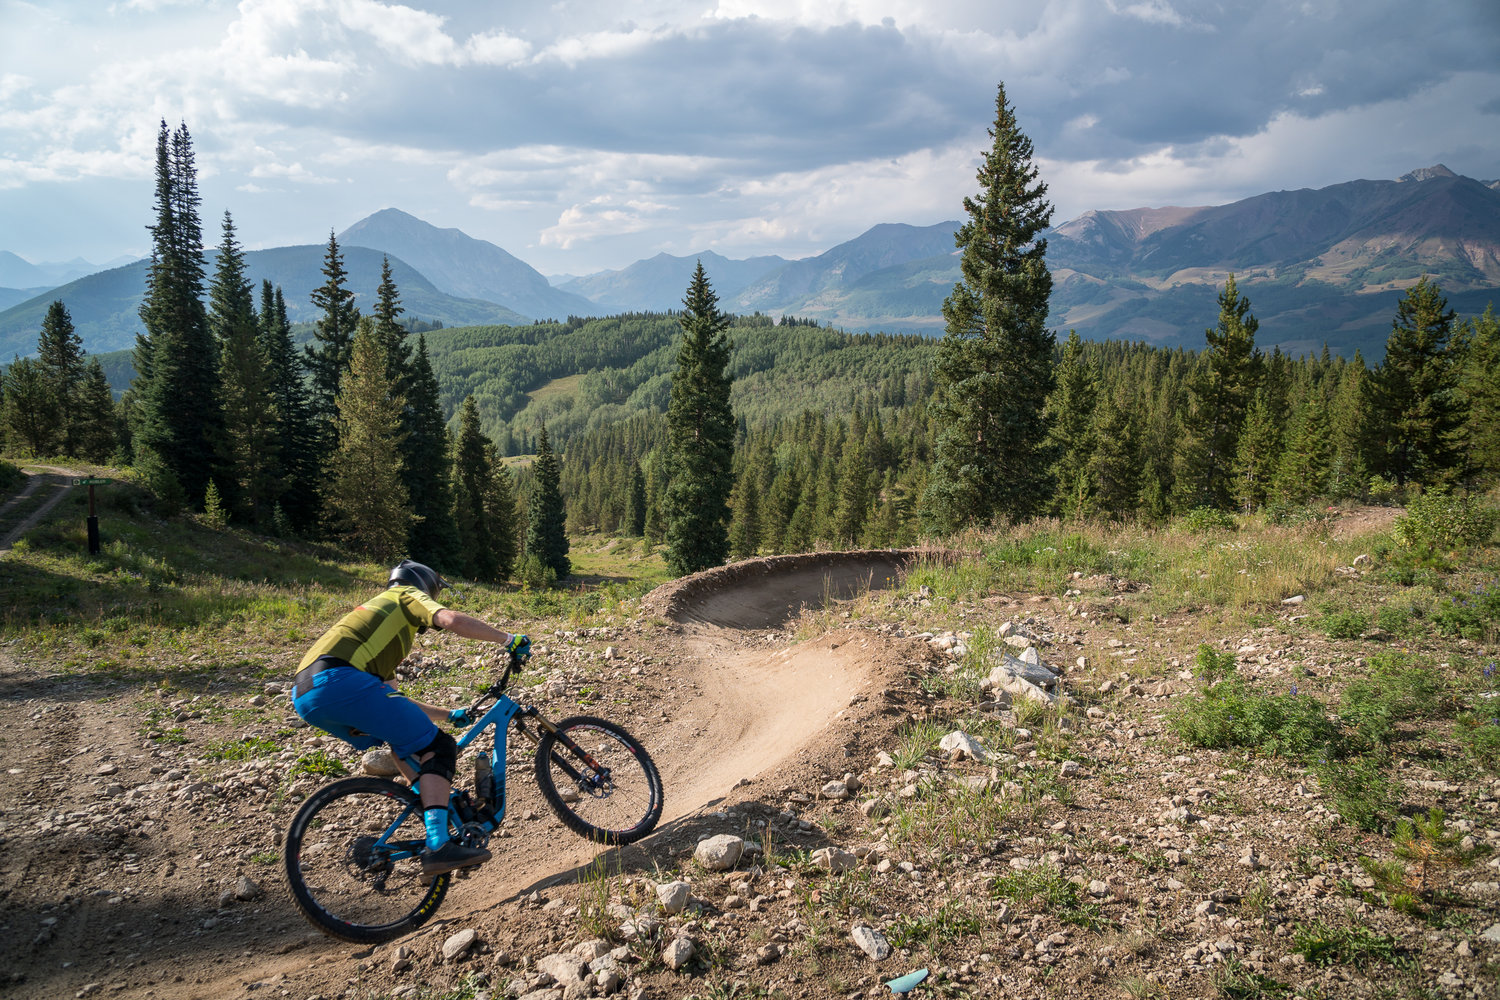 A rider demoing one of the many bikes available at Outerbike, Crested Butte, CO. Photo courtesy Outerbike.